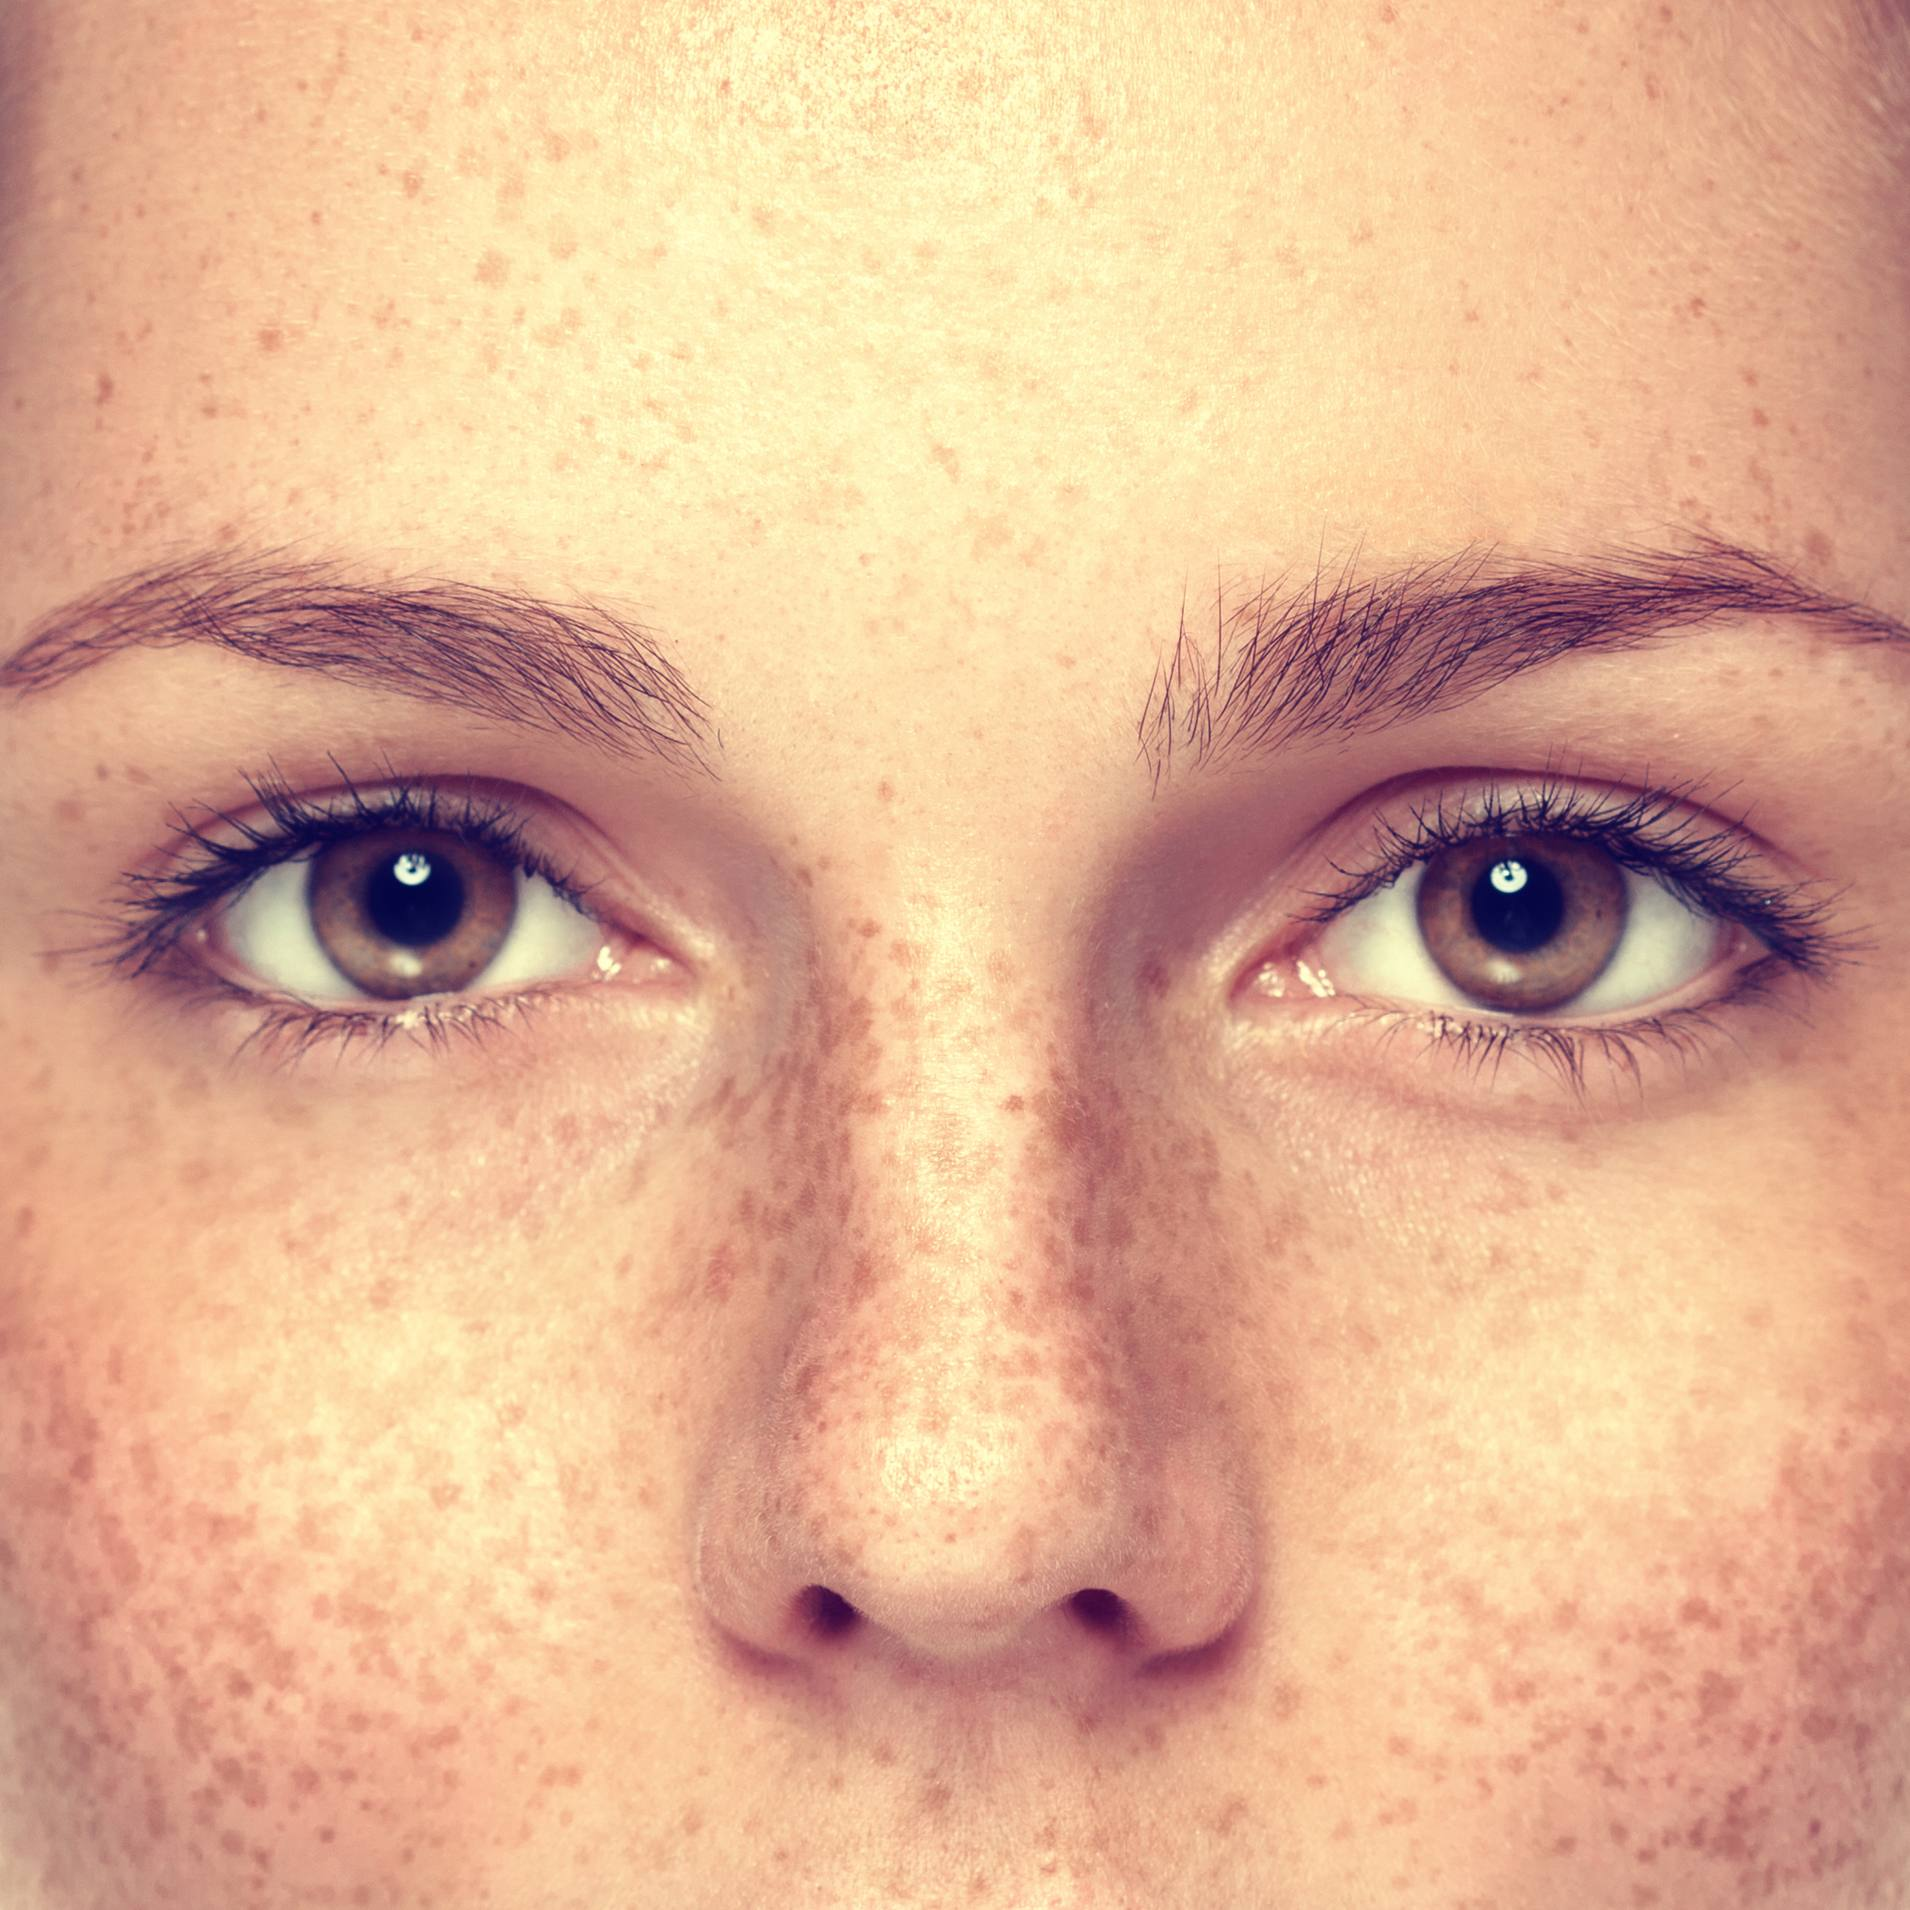 a close-up of the eyes, cheeks and nose of a young woman with freckles